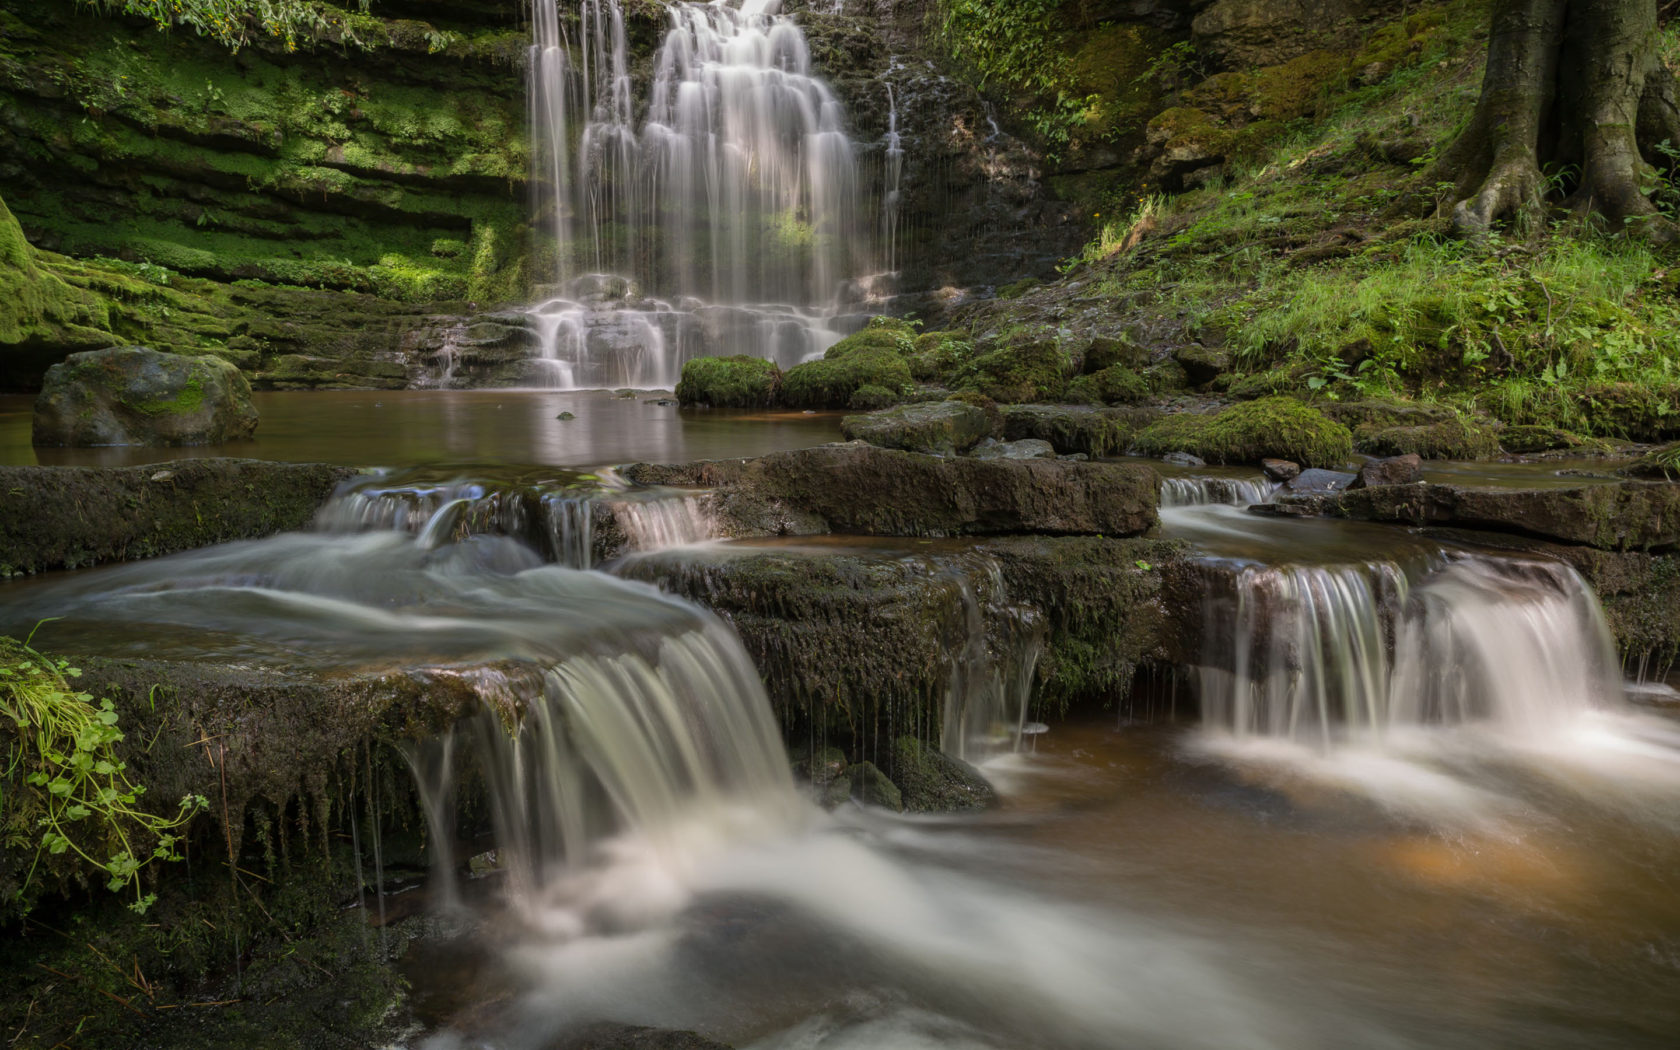 Niagara Falls Wallpaper Nature Scaleber Force Waterfall Yorkshire Dales National Park